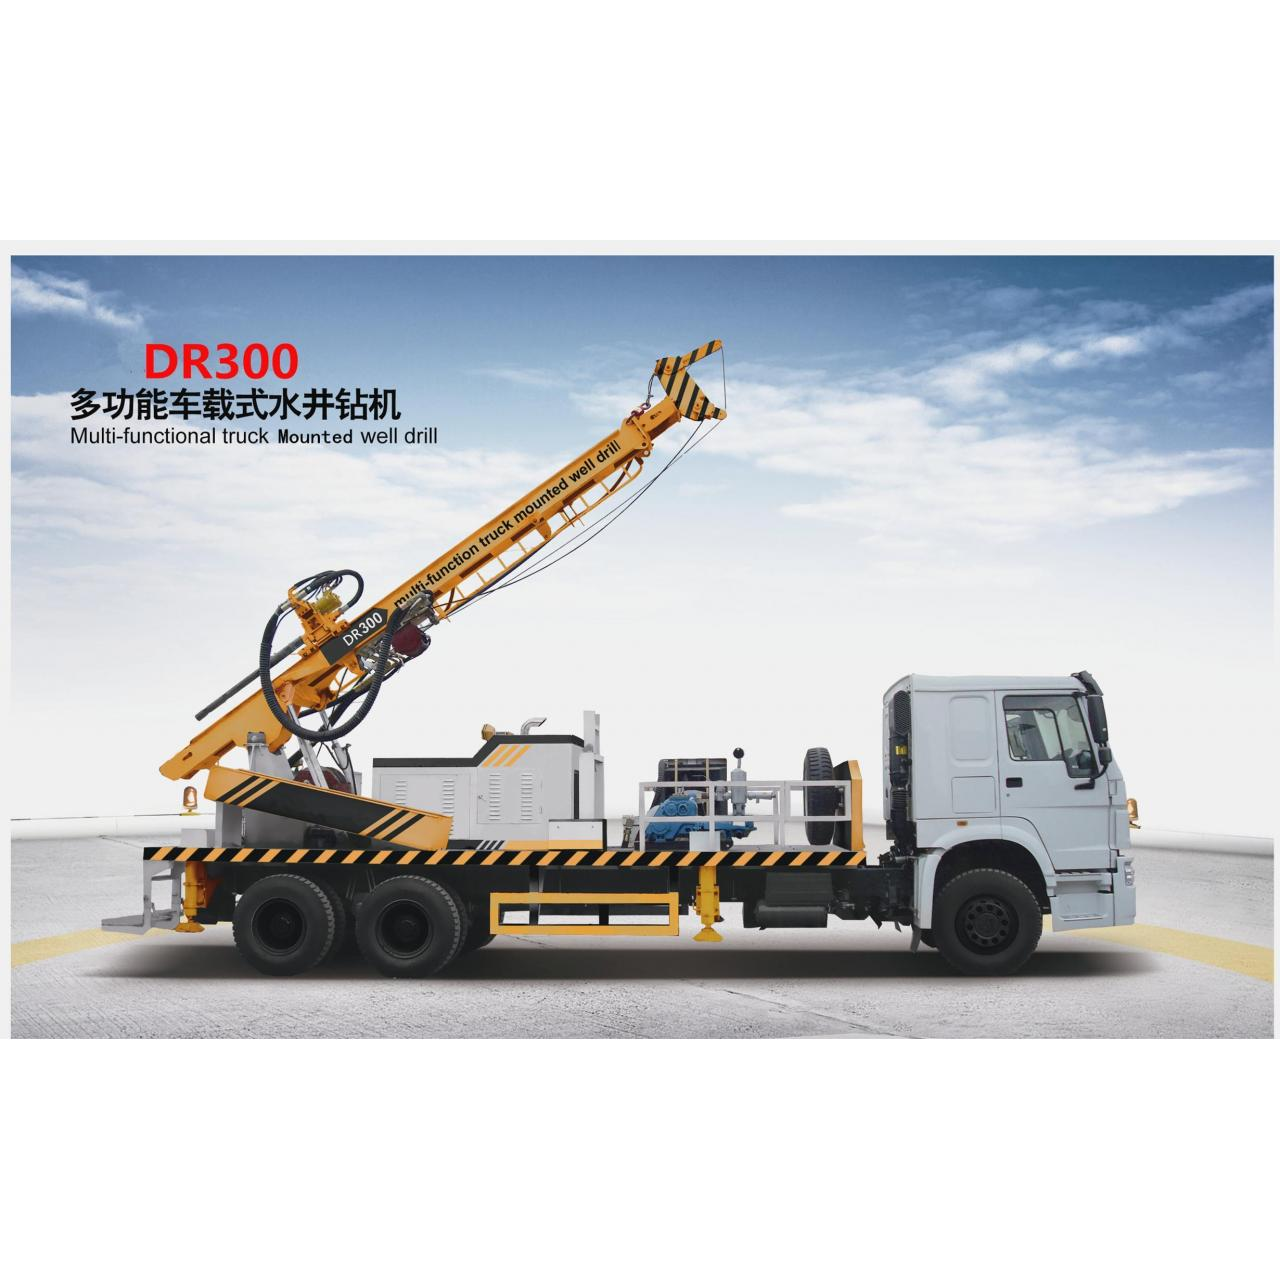 Drill Rig DR300 Multi-functional Truck Mounted Well Drill rig